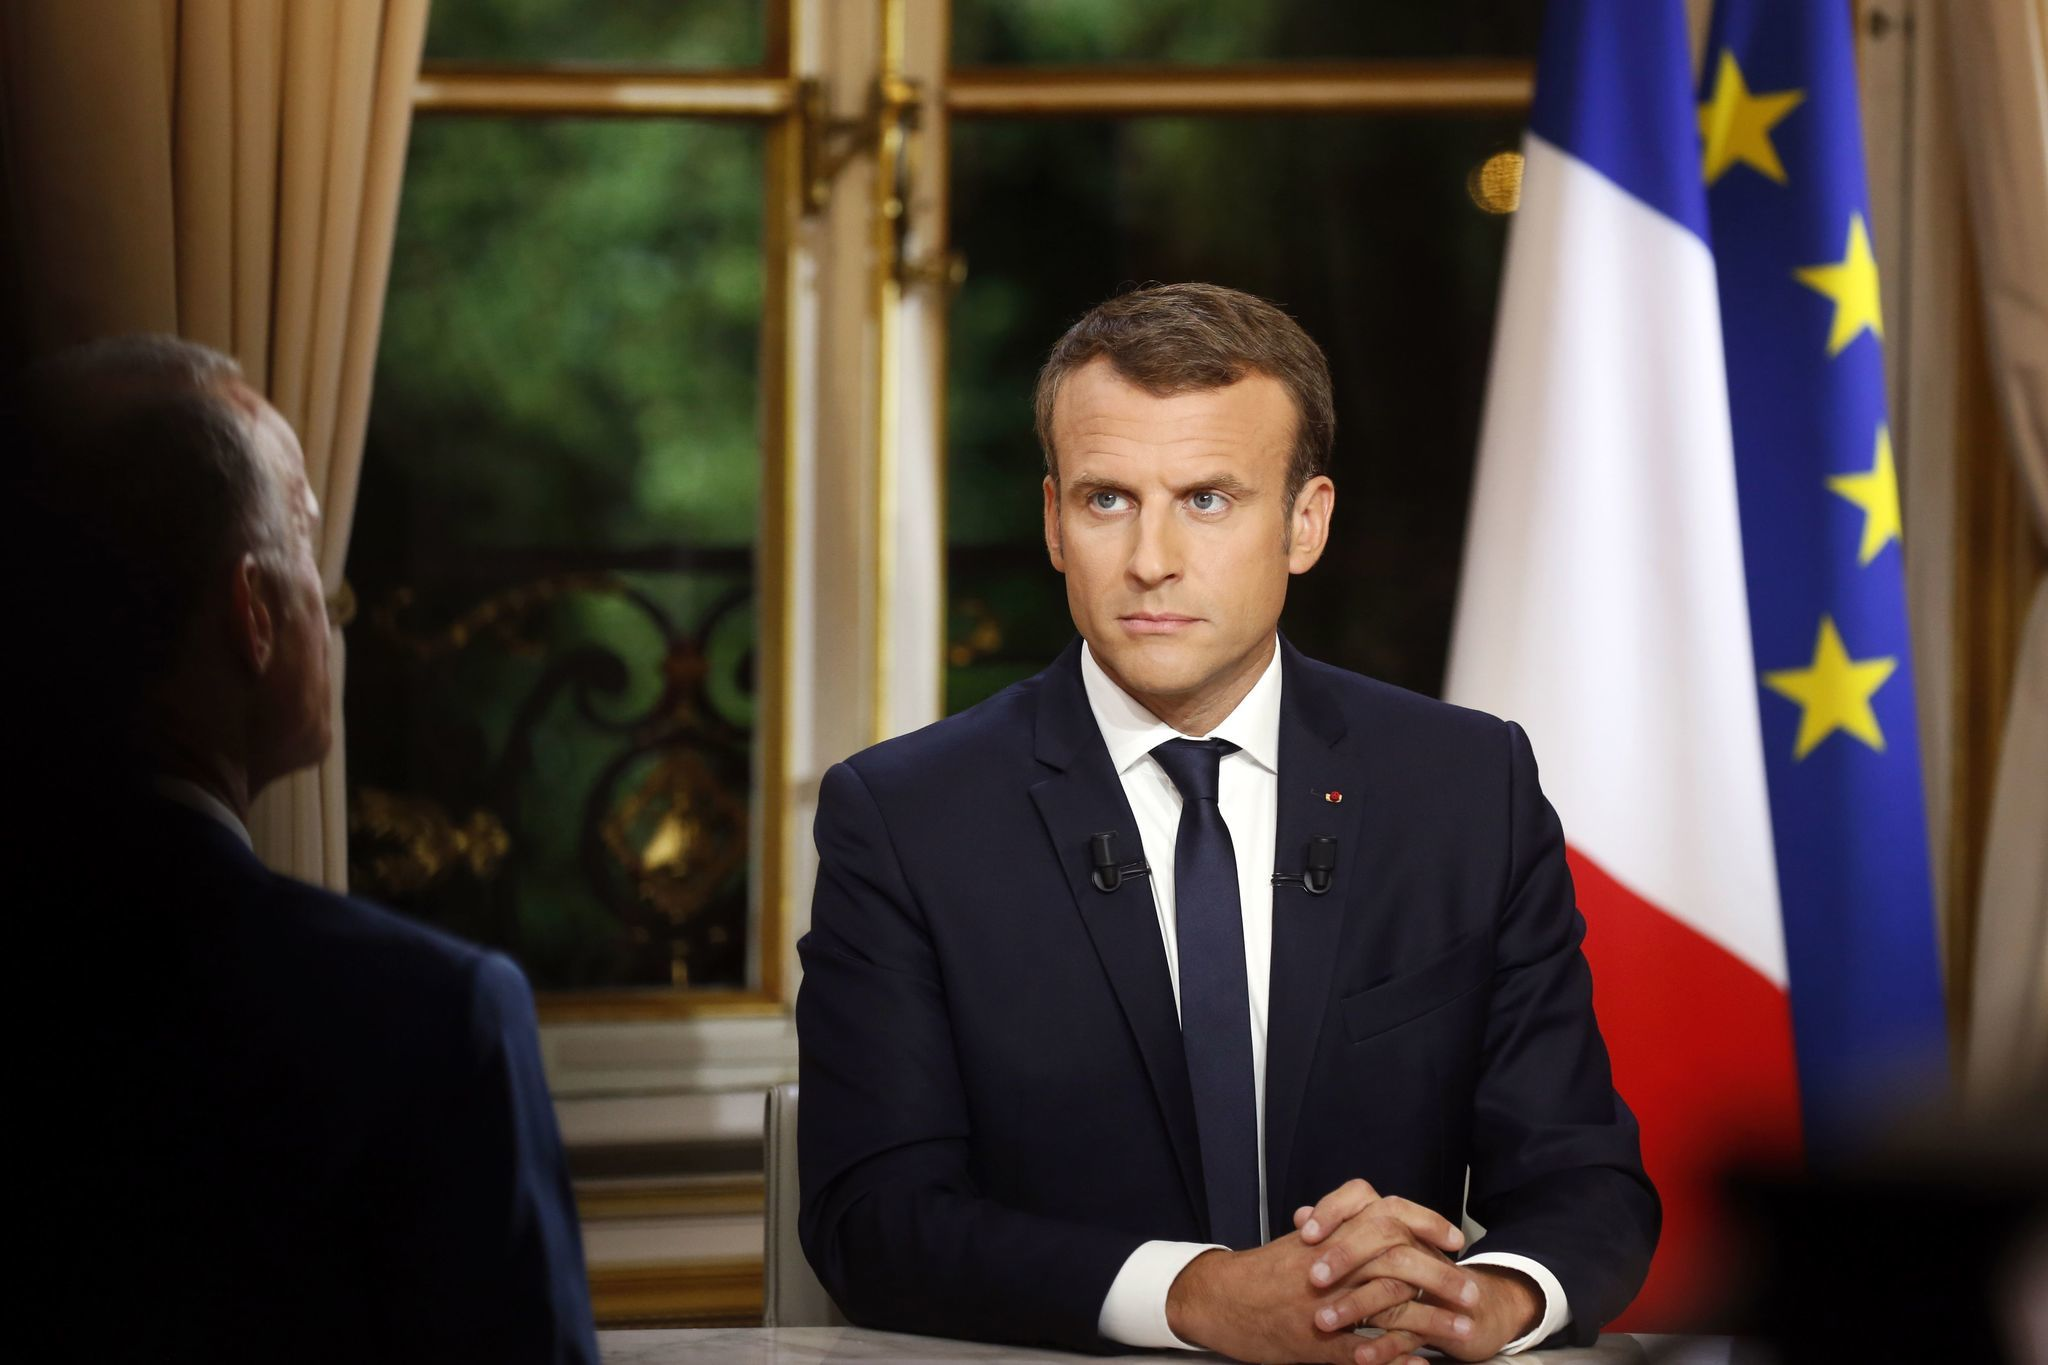 French President Emmanuel Macron is interviewed at the Elysee Palace in Paris on Sunday